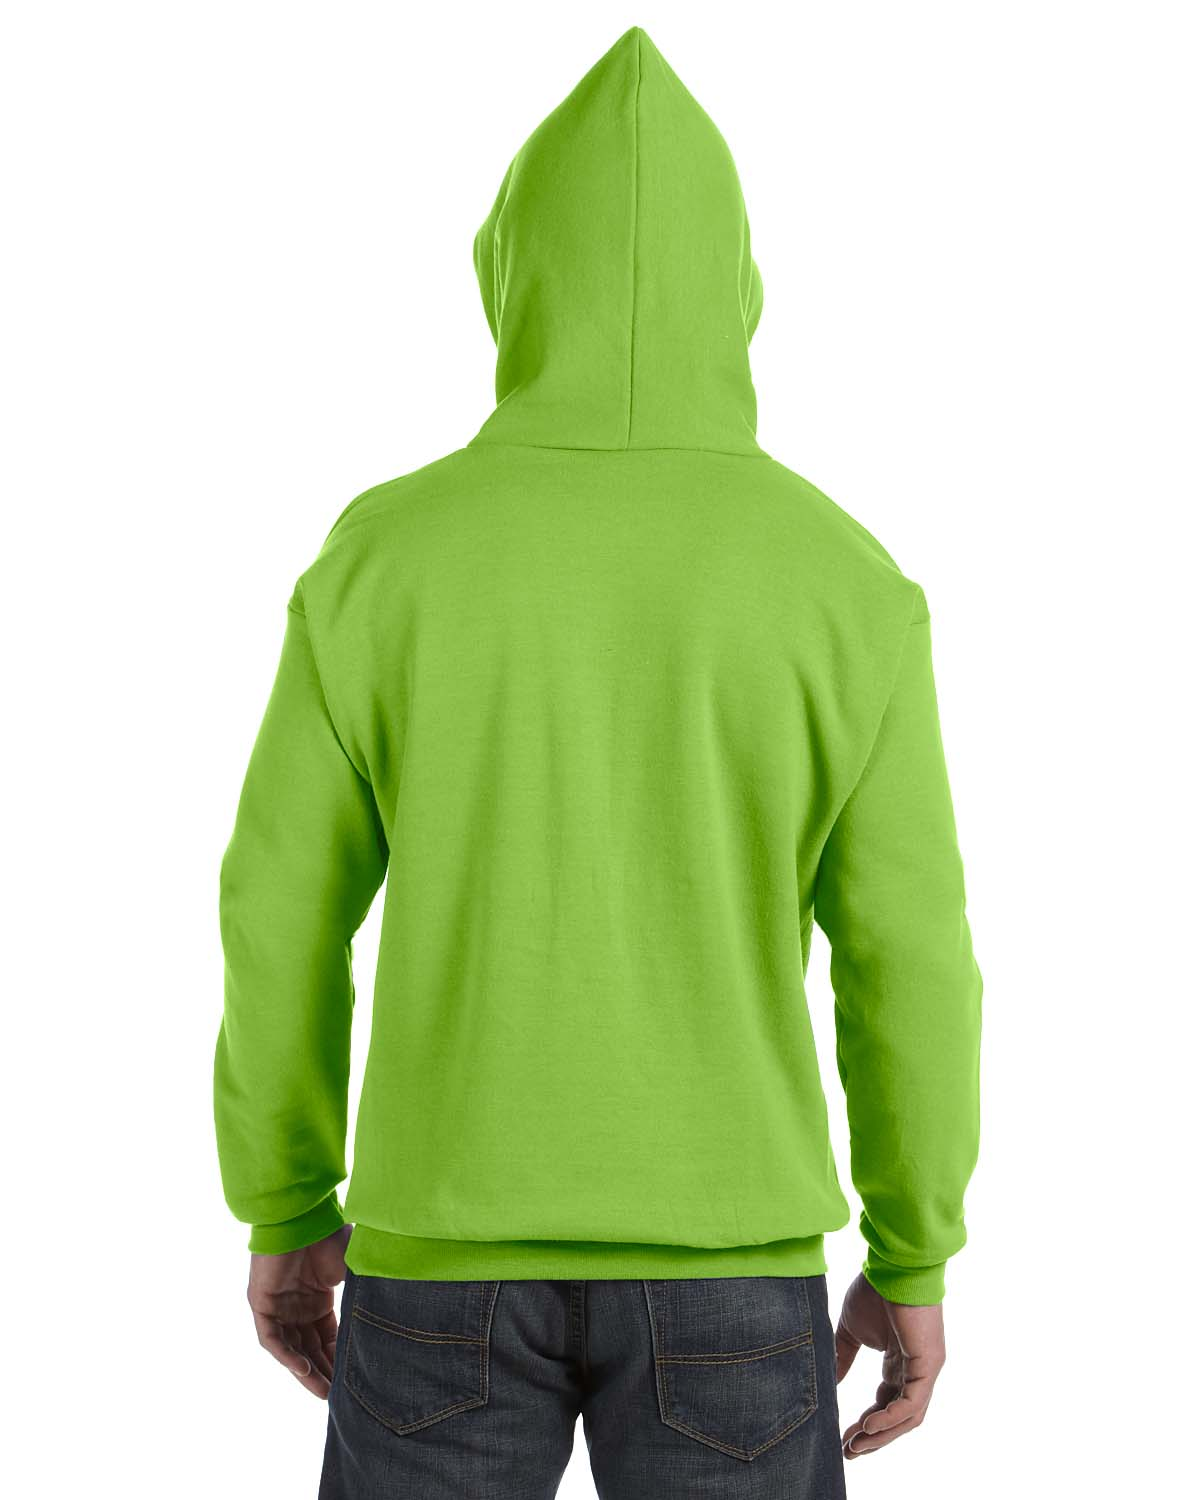 Men's Pullover Hoodie & Pullover Sweatshirts. Whether you call them pullover hoodies or pull over sweatshirts Zumiez has your favorite brand of mens sweatshirts and all hoodies get free shipping.